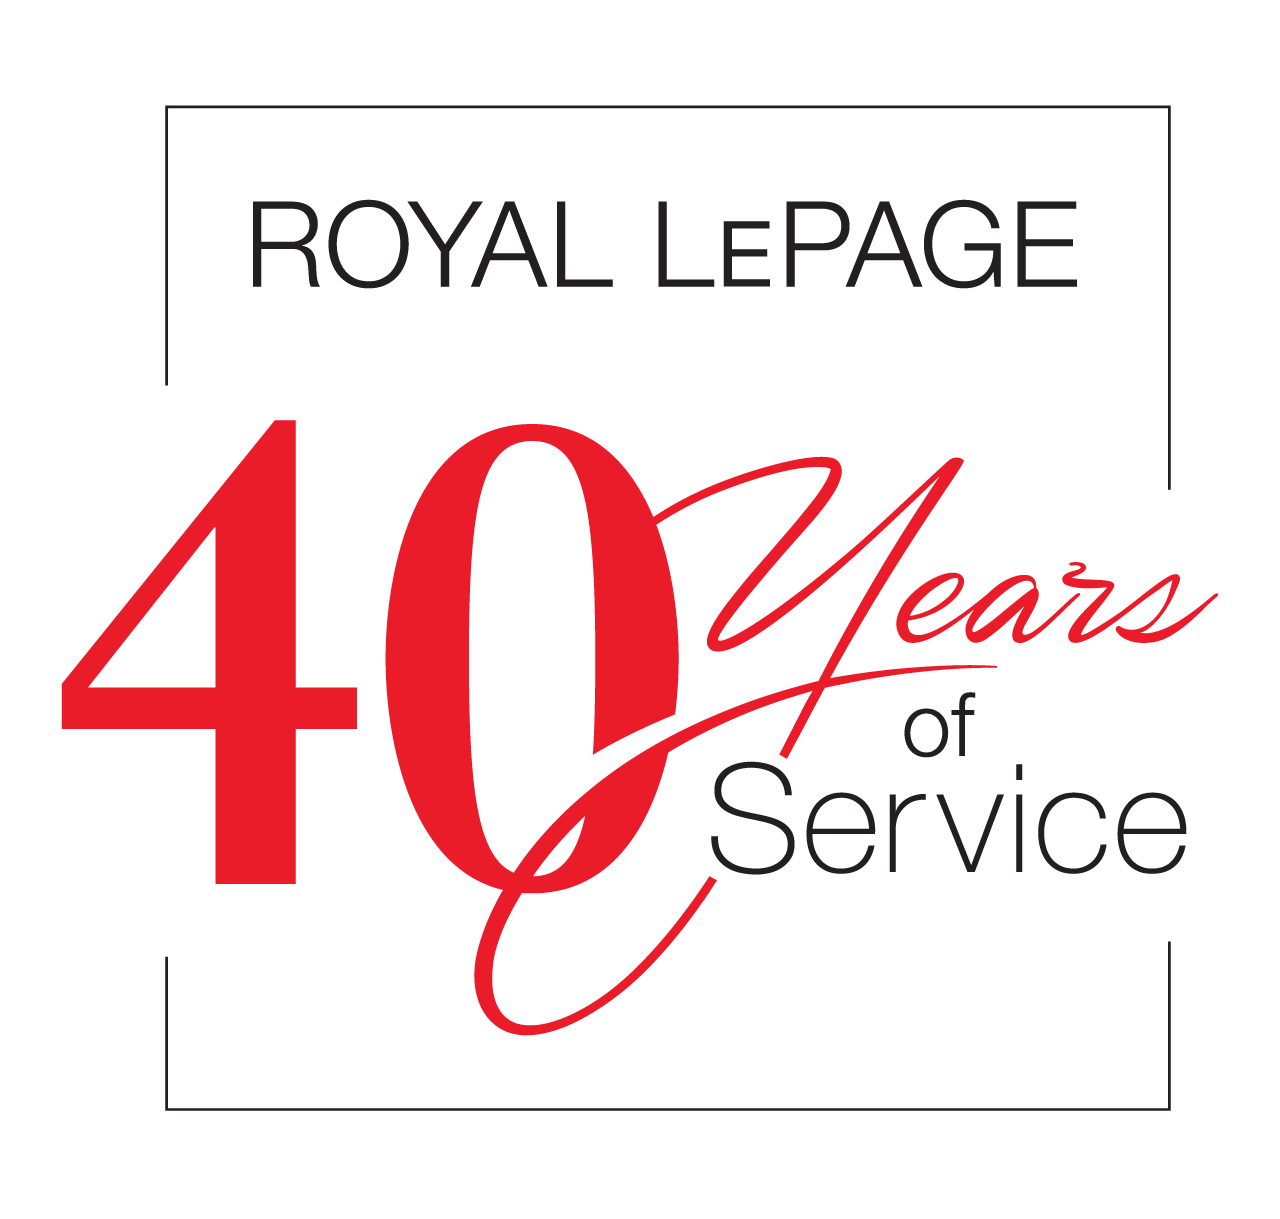 Years of Service - 40 Years